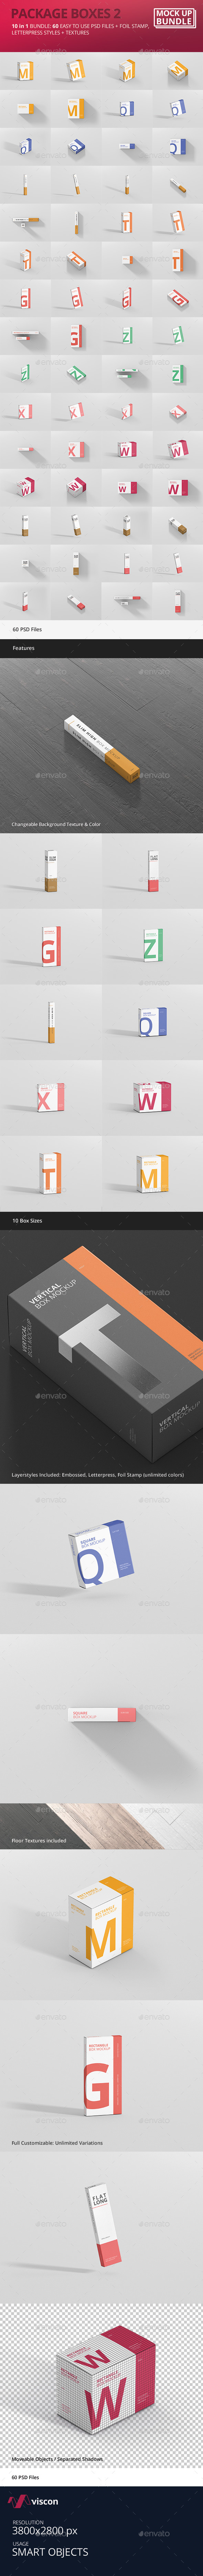 Box Mockup Bundle 2 - Miscellaneous Packaging